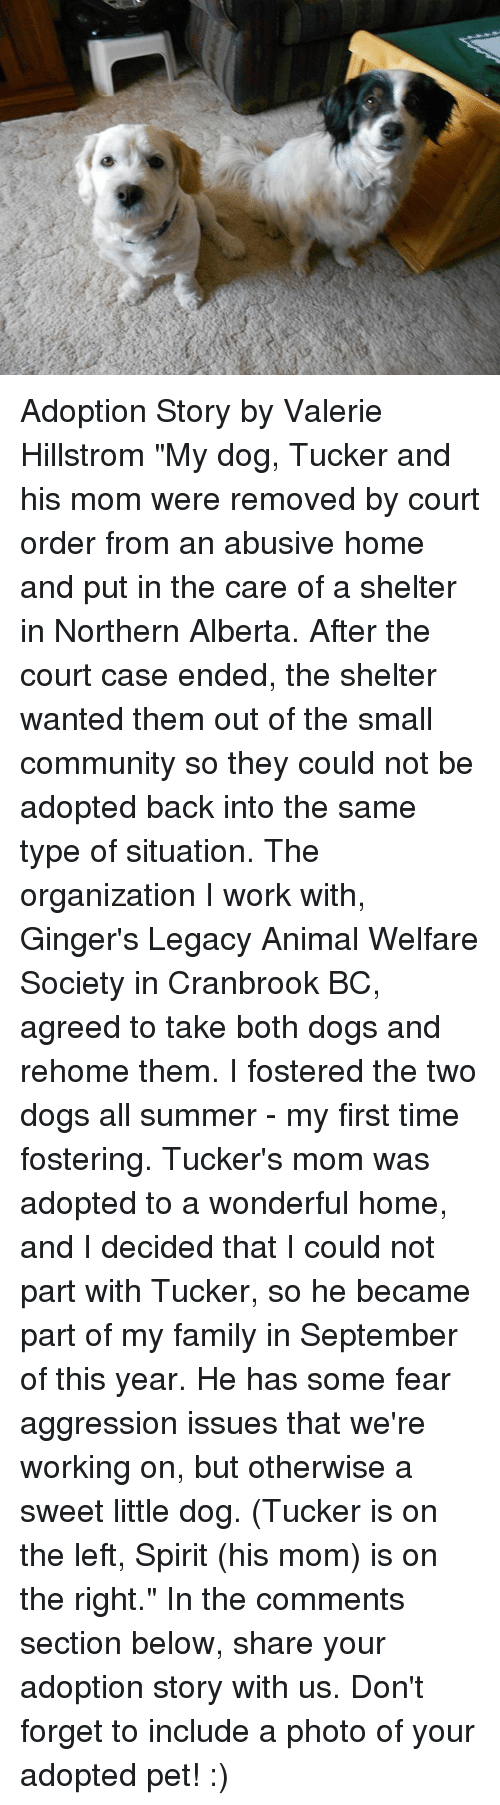 """animal welfare: Adoption Story by Valerie Hillstrom  """"My dog, Tucker and his mom were removed by court order from an abusive home and put in the care of a shelter in Northern Alberta. After the court case ended, the shelter wanted them out of the small community so they could not be adopted back into the same type of situation. The organization I work with, Ginger's Legacy Animal Welfare Society in Cranbrook BC, agreed to take both dogs and rehome them. I fostered the two dogs all summer - my first time fostering. Tucker's mom was adopted to a wonderful home, and I decided that I could not part with Tucker, so he became part of my family in September of this year. He has some fear aggression issues that we're working on, but otherwise a sweet little dog. (Tucker is on the left, Spirit (his mom) is on the right.""""  In the comments section below, share your adoption story with us. Don't forget to include a photo of your adopted pet! :)"""